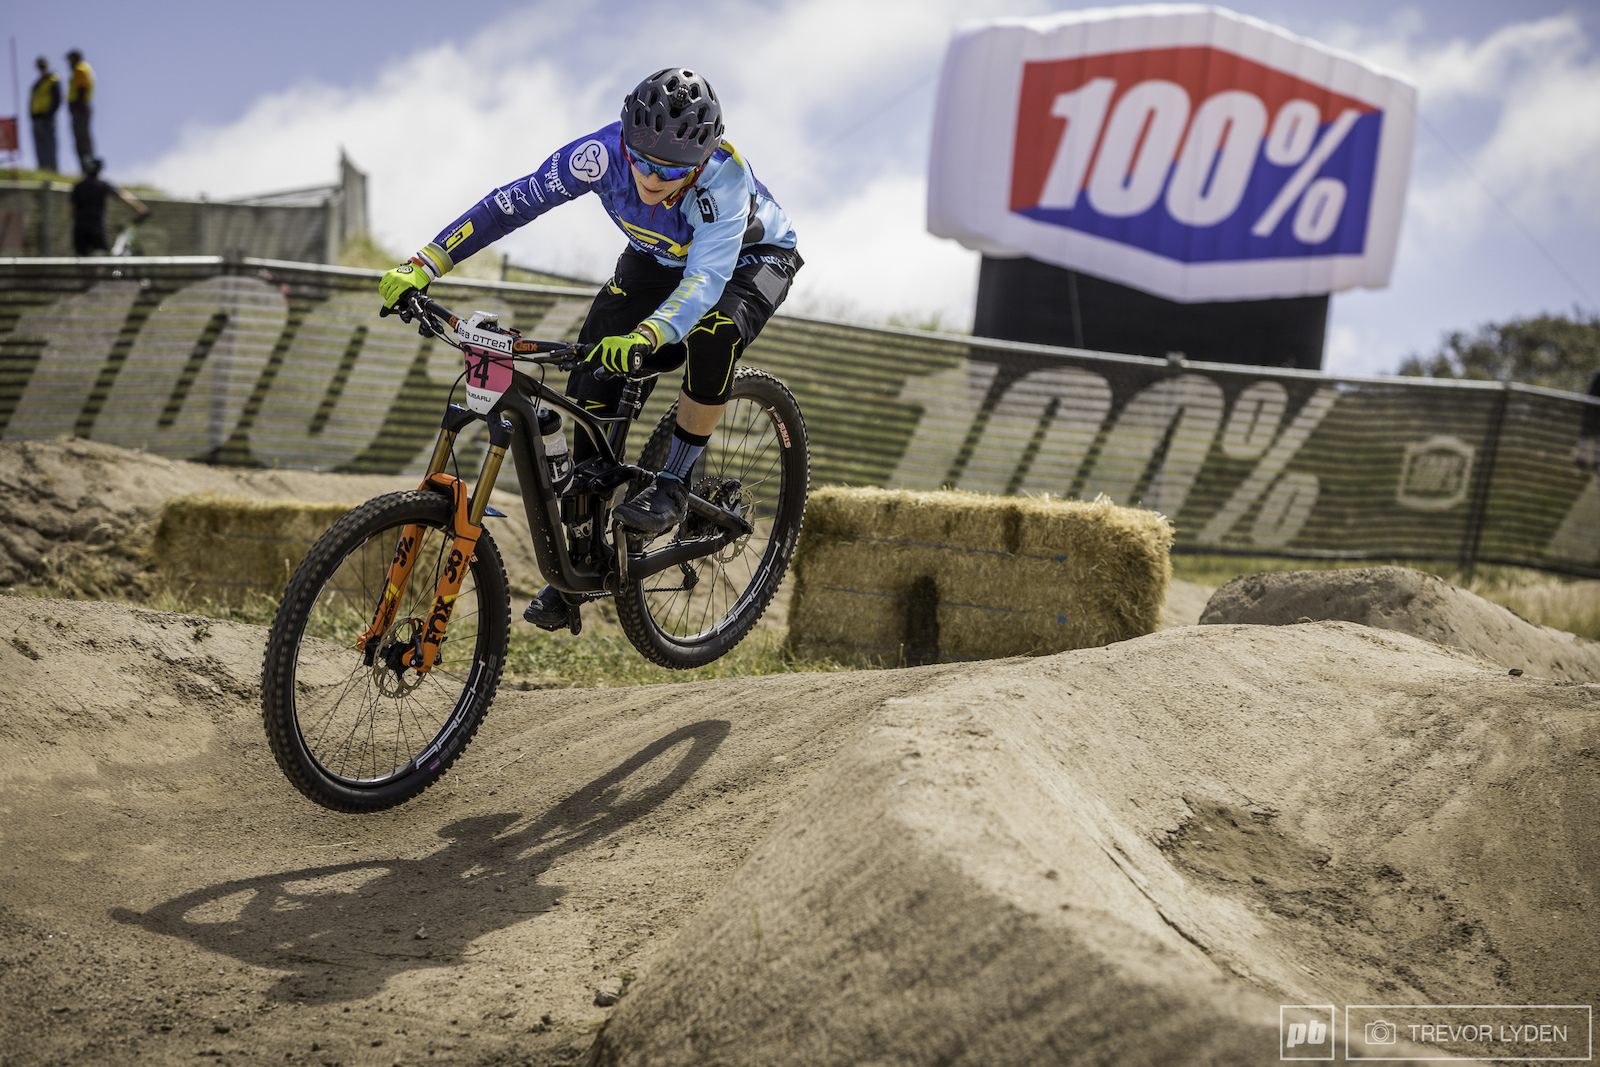 Noga Korem going 100 on the dual slalom stage of the enduro.